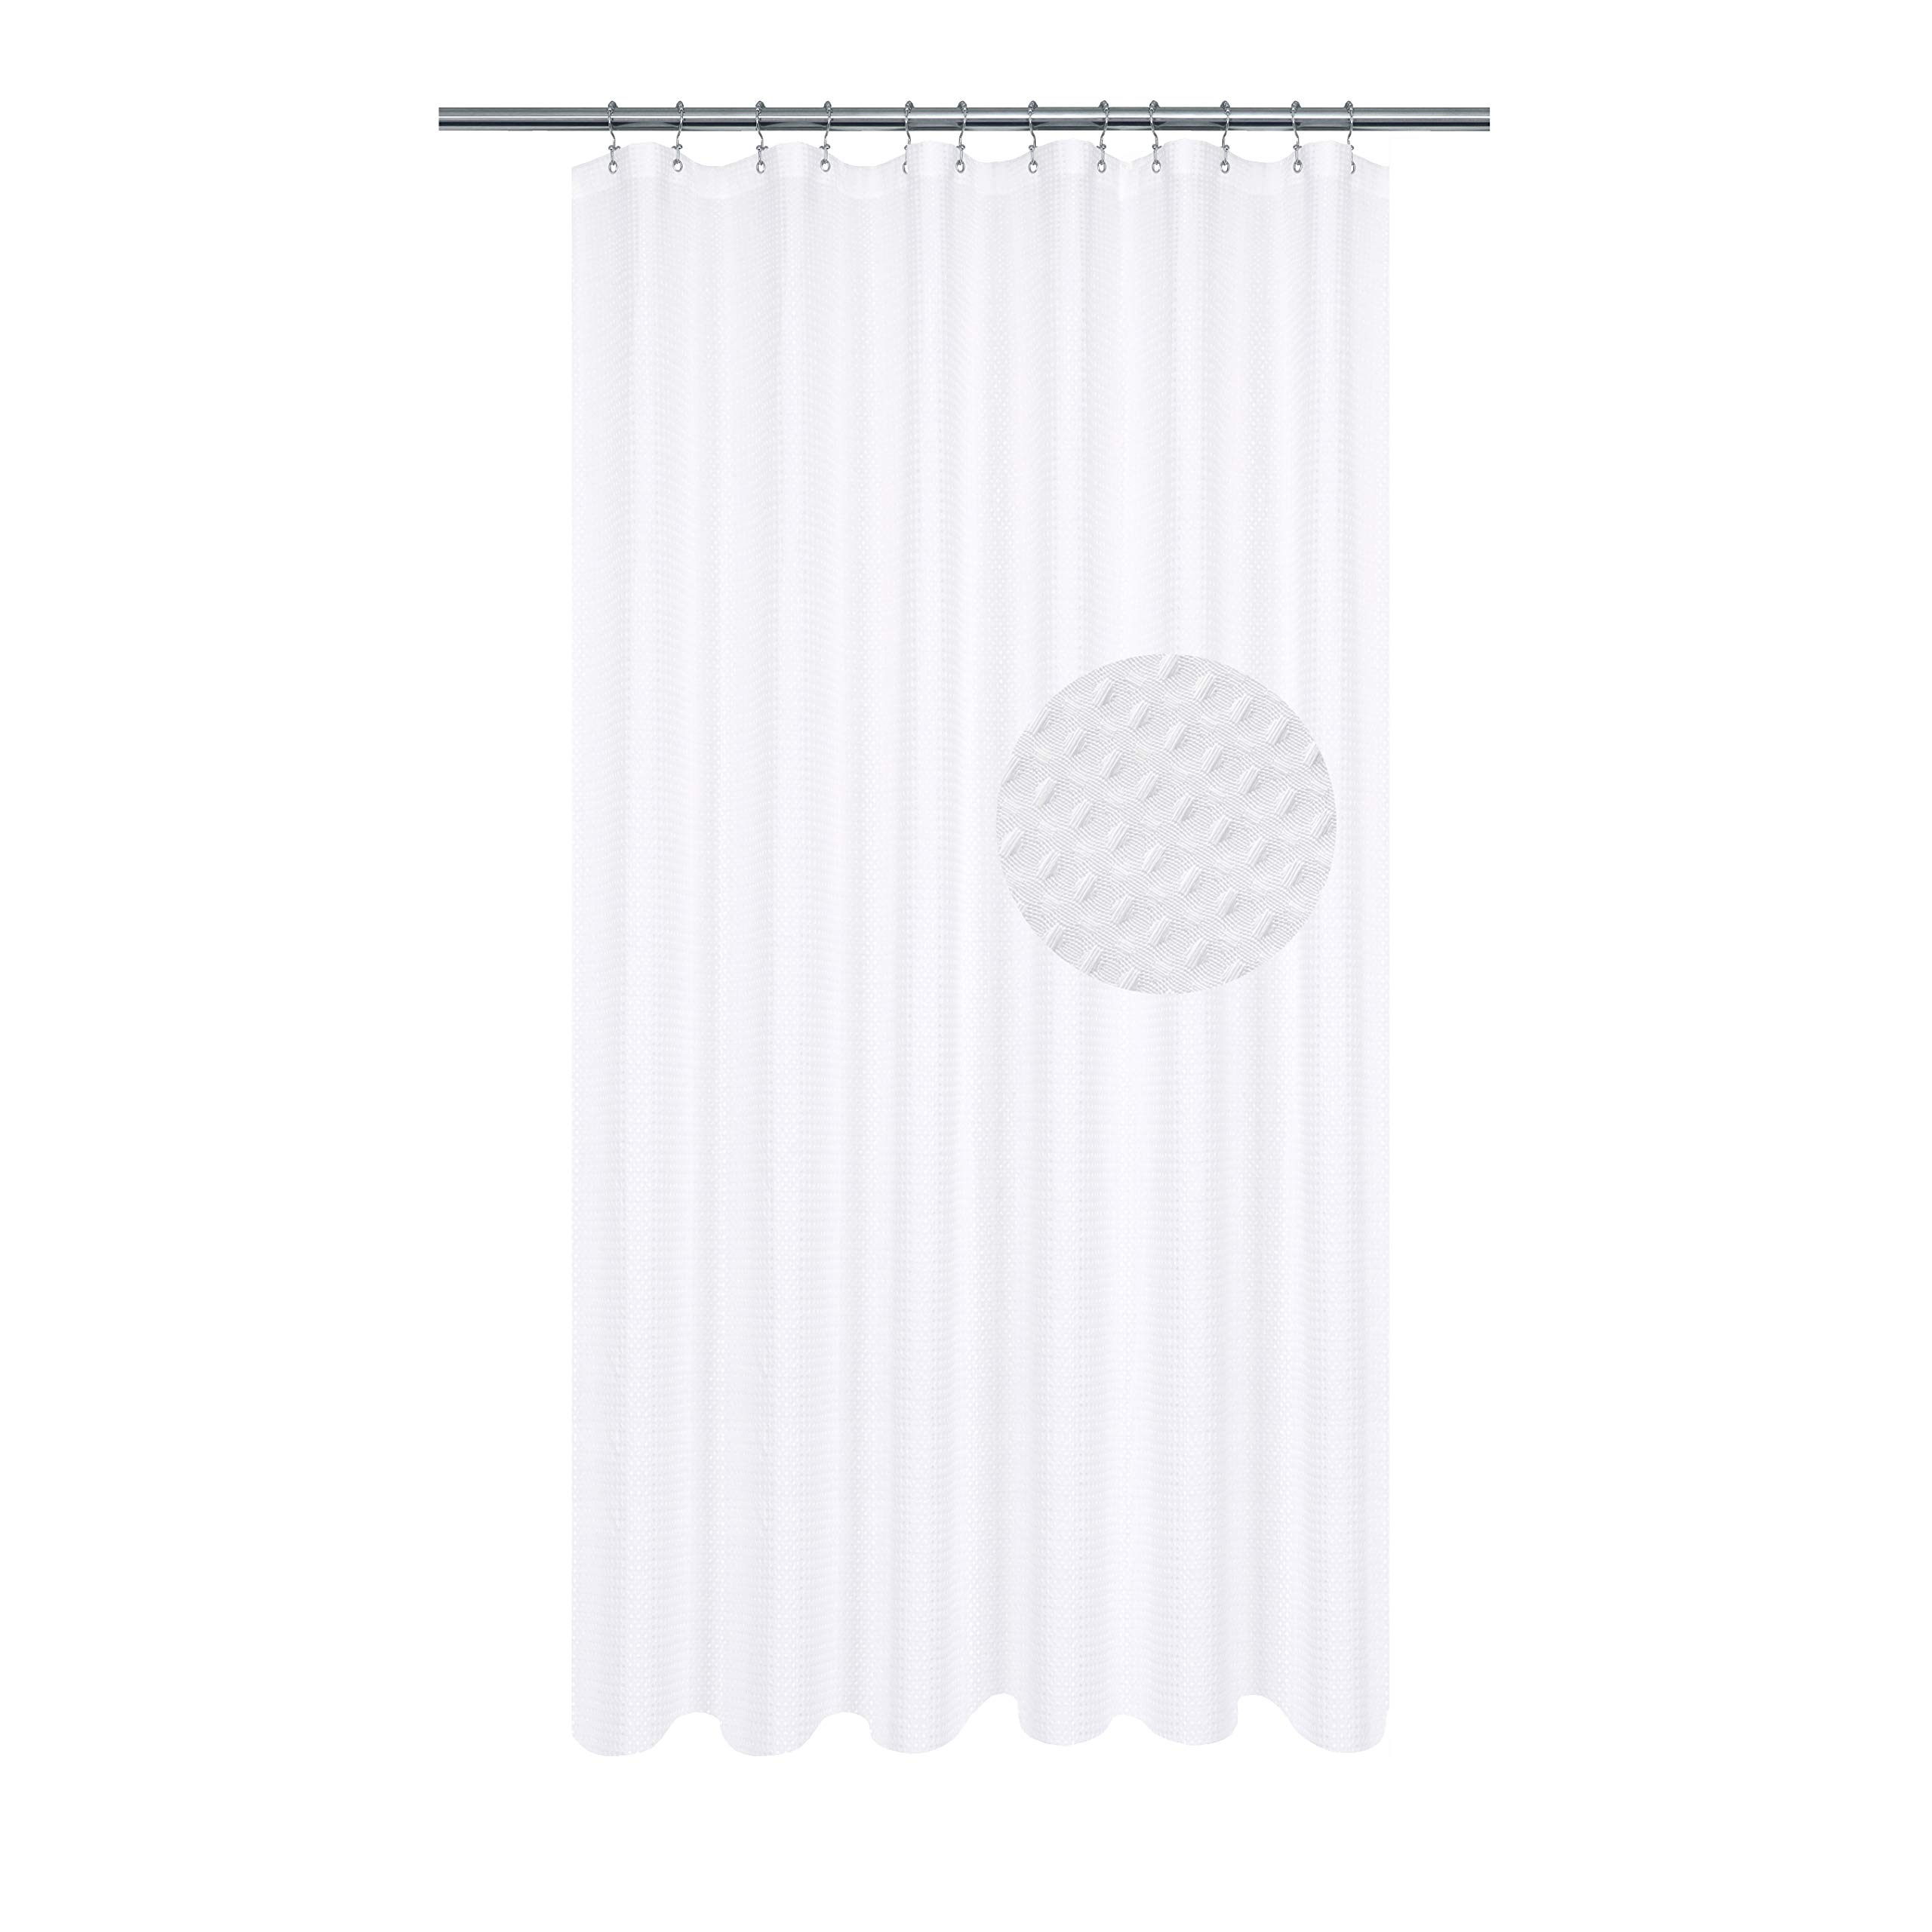 extra long shower curtain with 84 inch height fabric waffle weave hotel collection water repellent machine washable 230 gsm heavy duty white